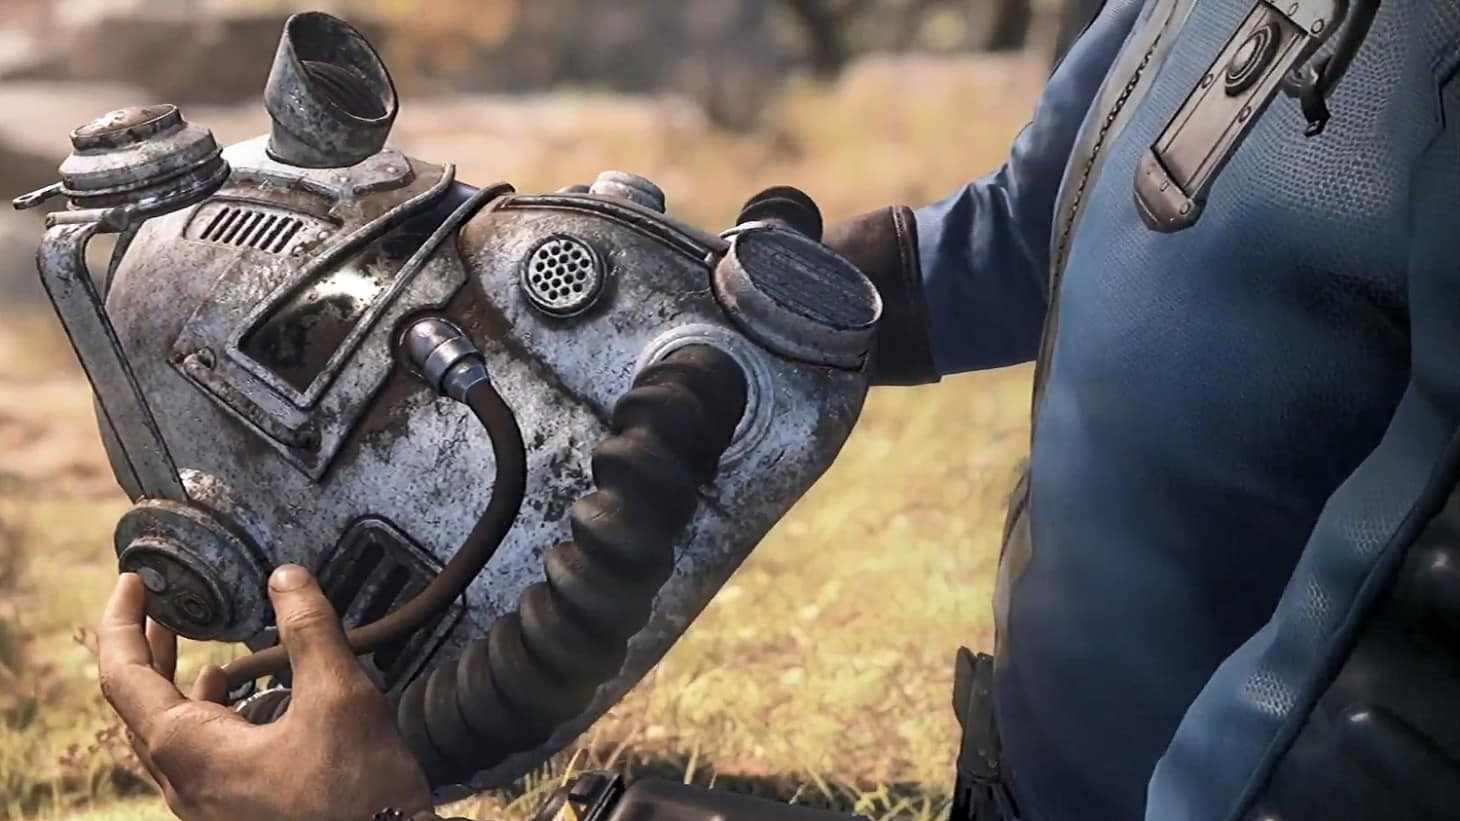 Fallout 76 loot boxes